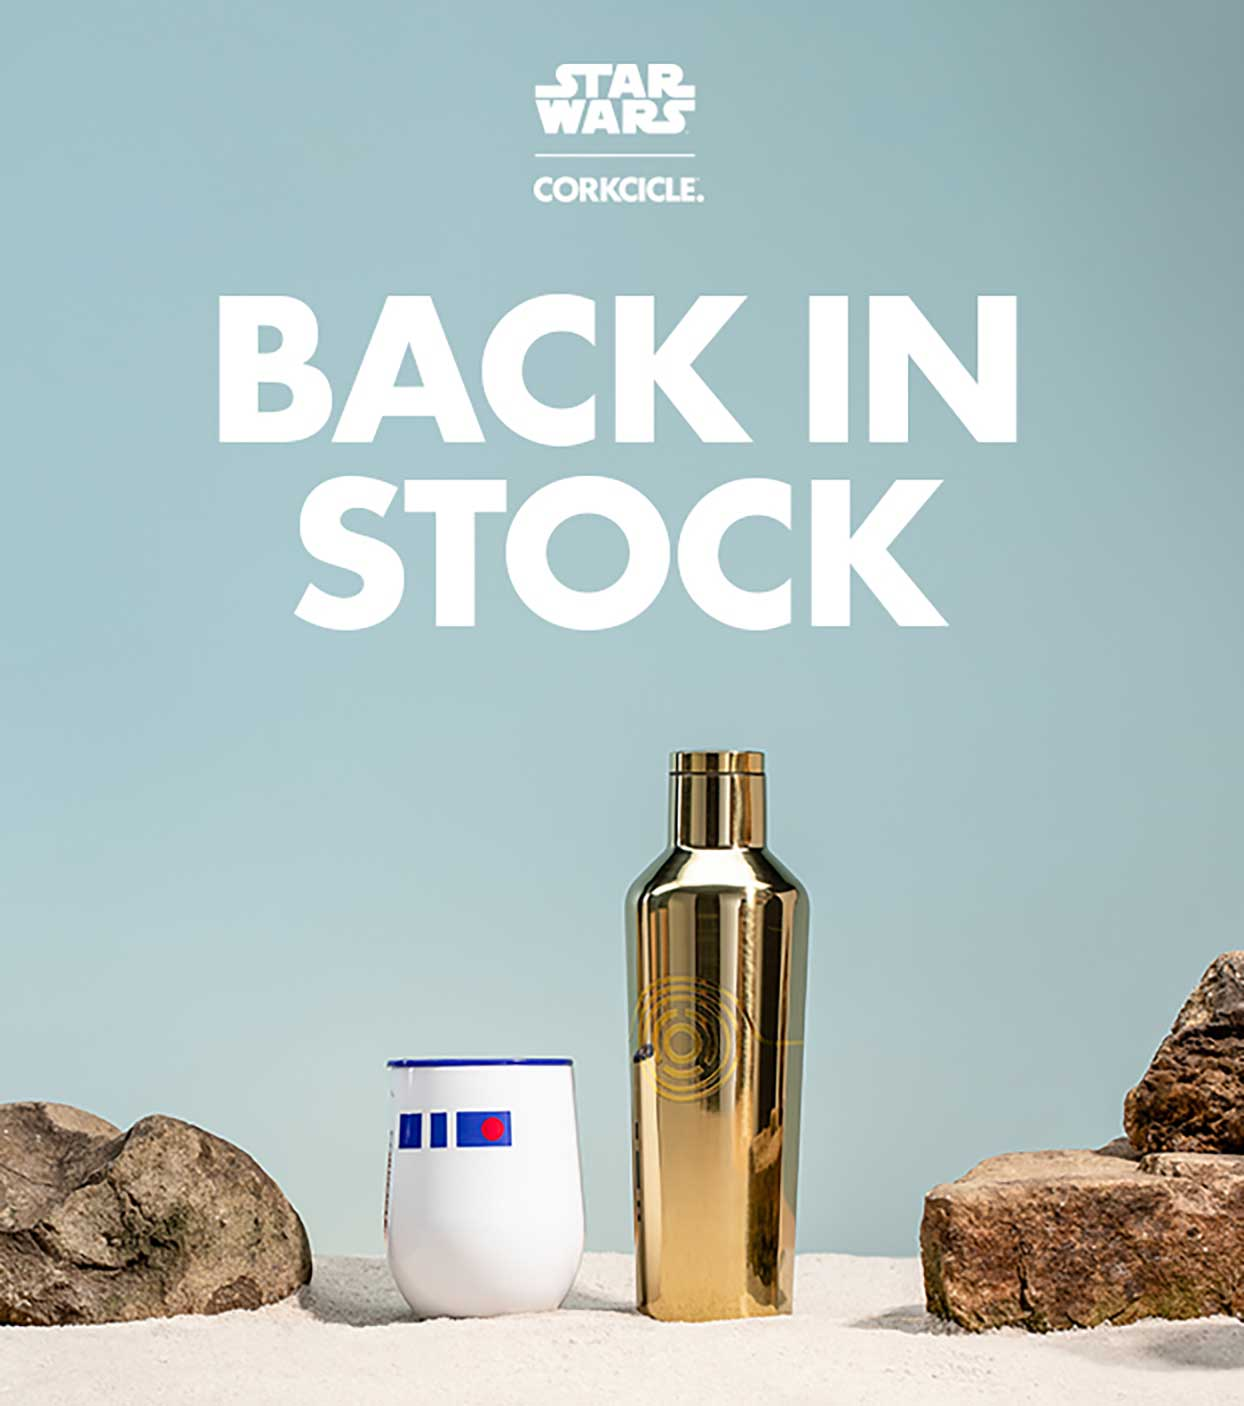 Star Wars is back in stock.